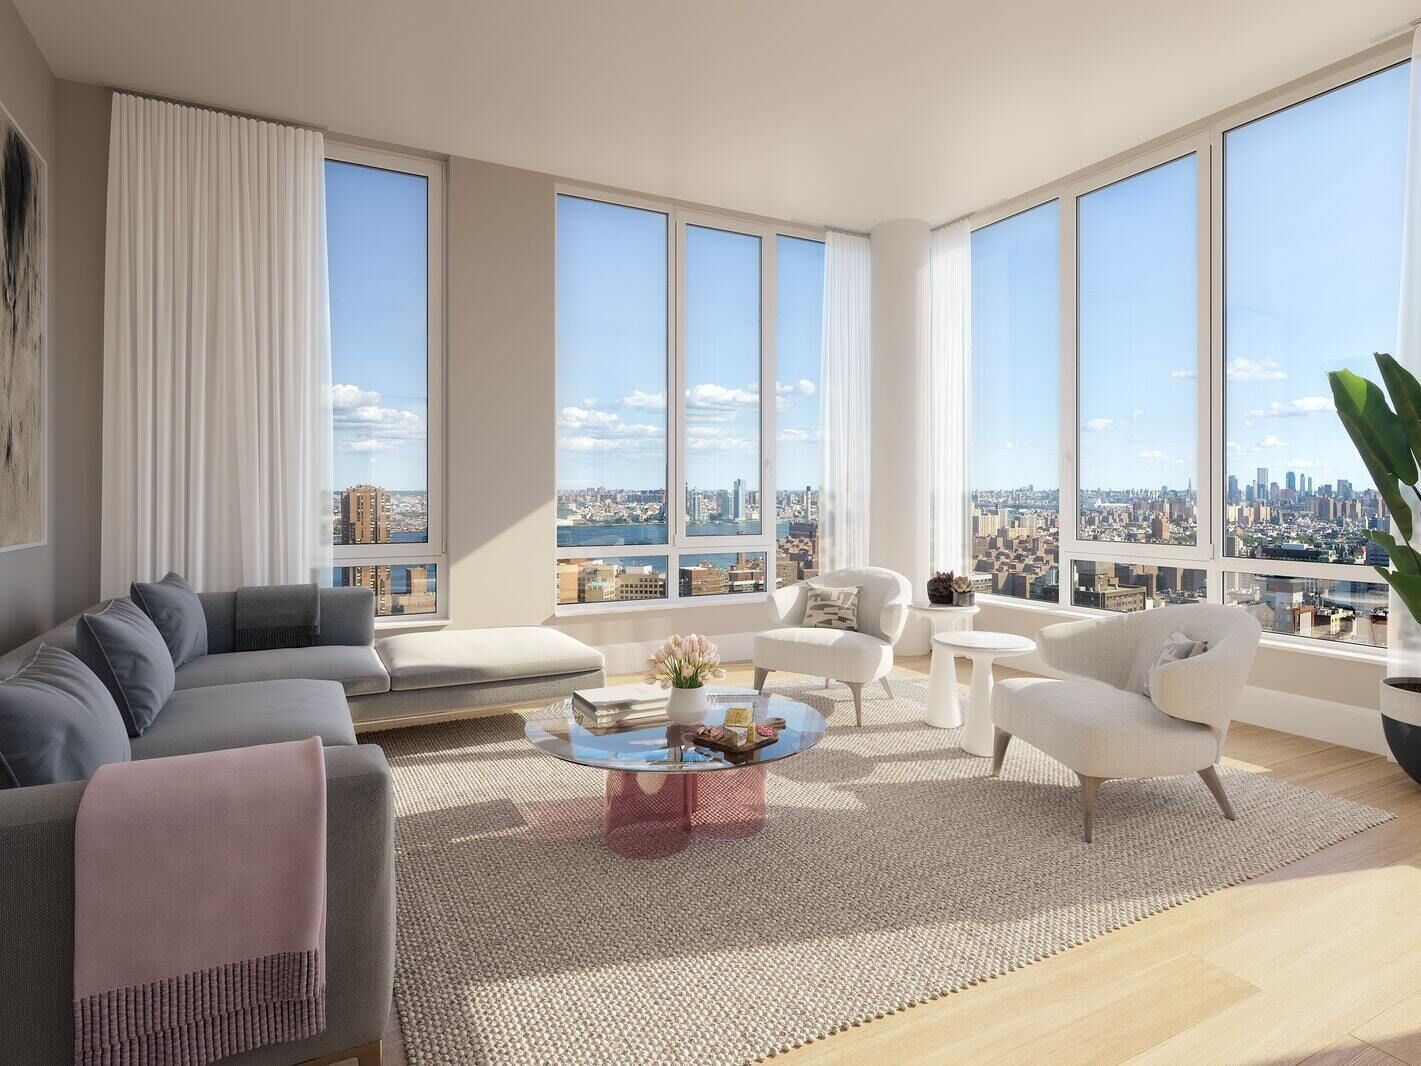 Apartment for sale at 368 Third Avenue, Apt 8A